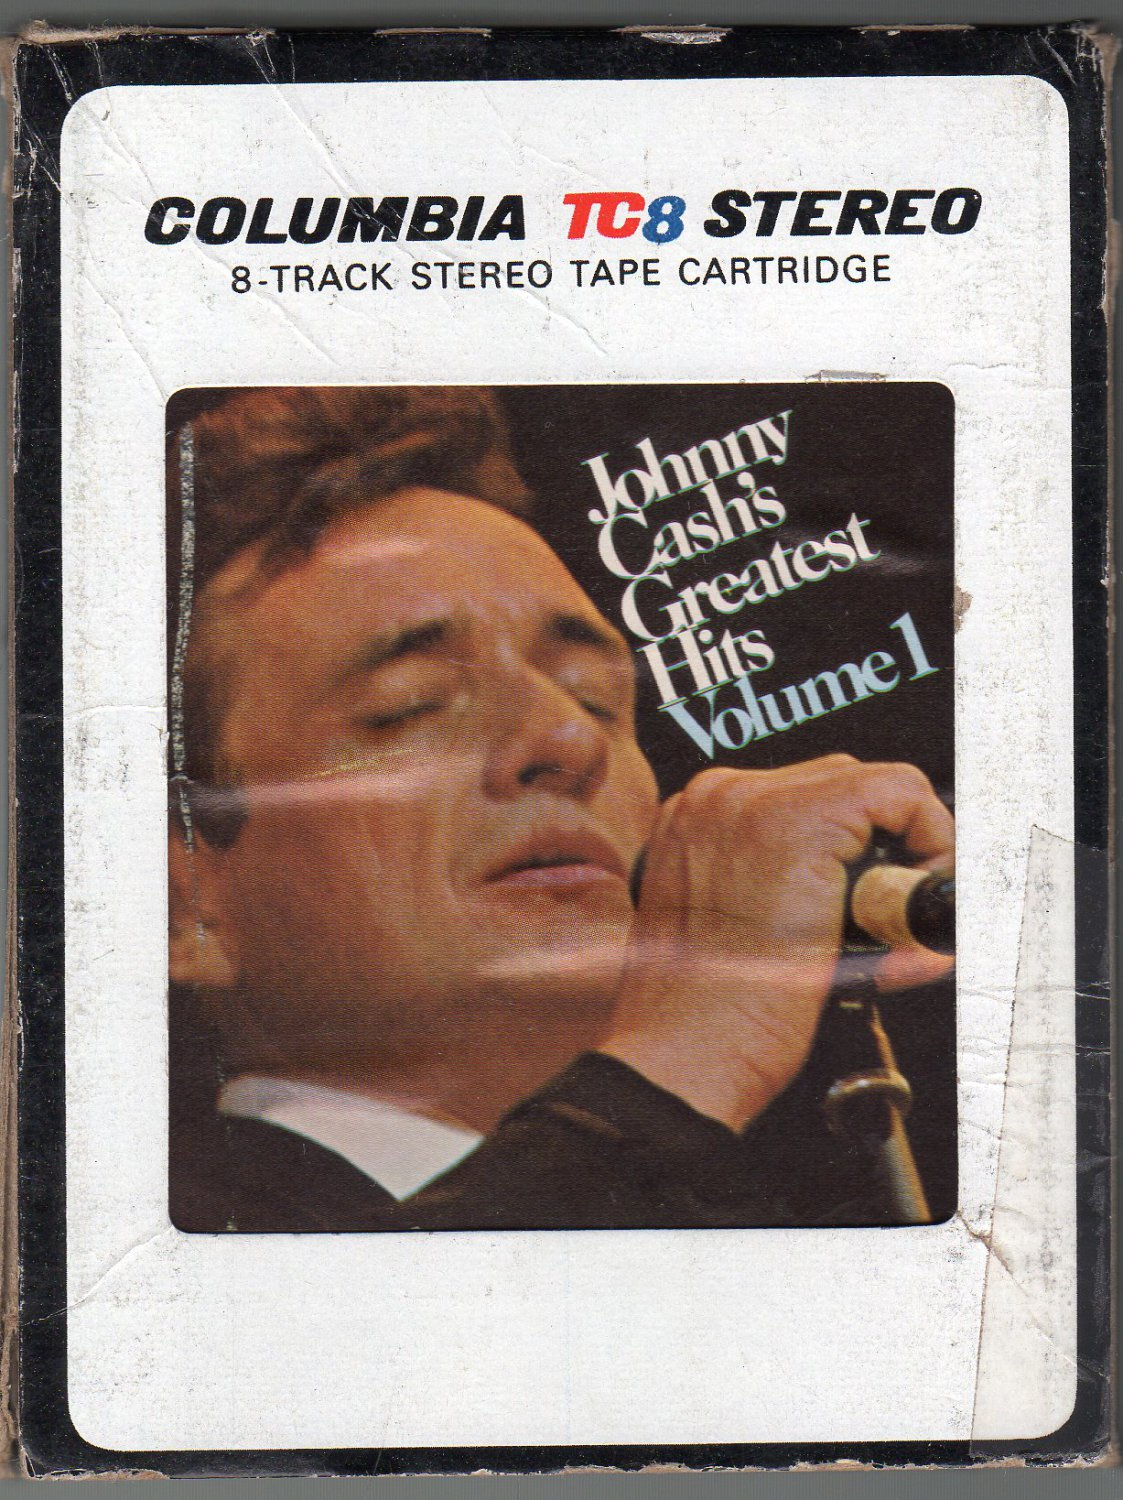 Johnny Cash - Johnny Cash's Greatest Hits Vol 1 1967 CBS TC8 SOLD 8-track tape